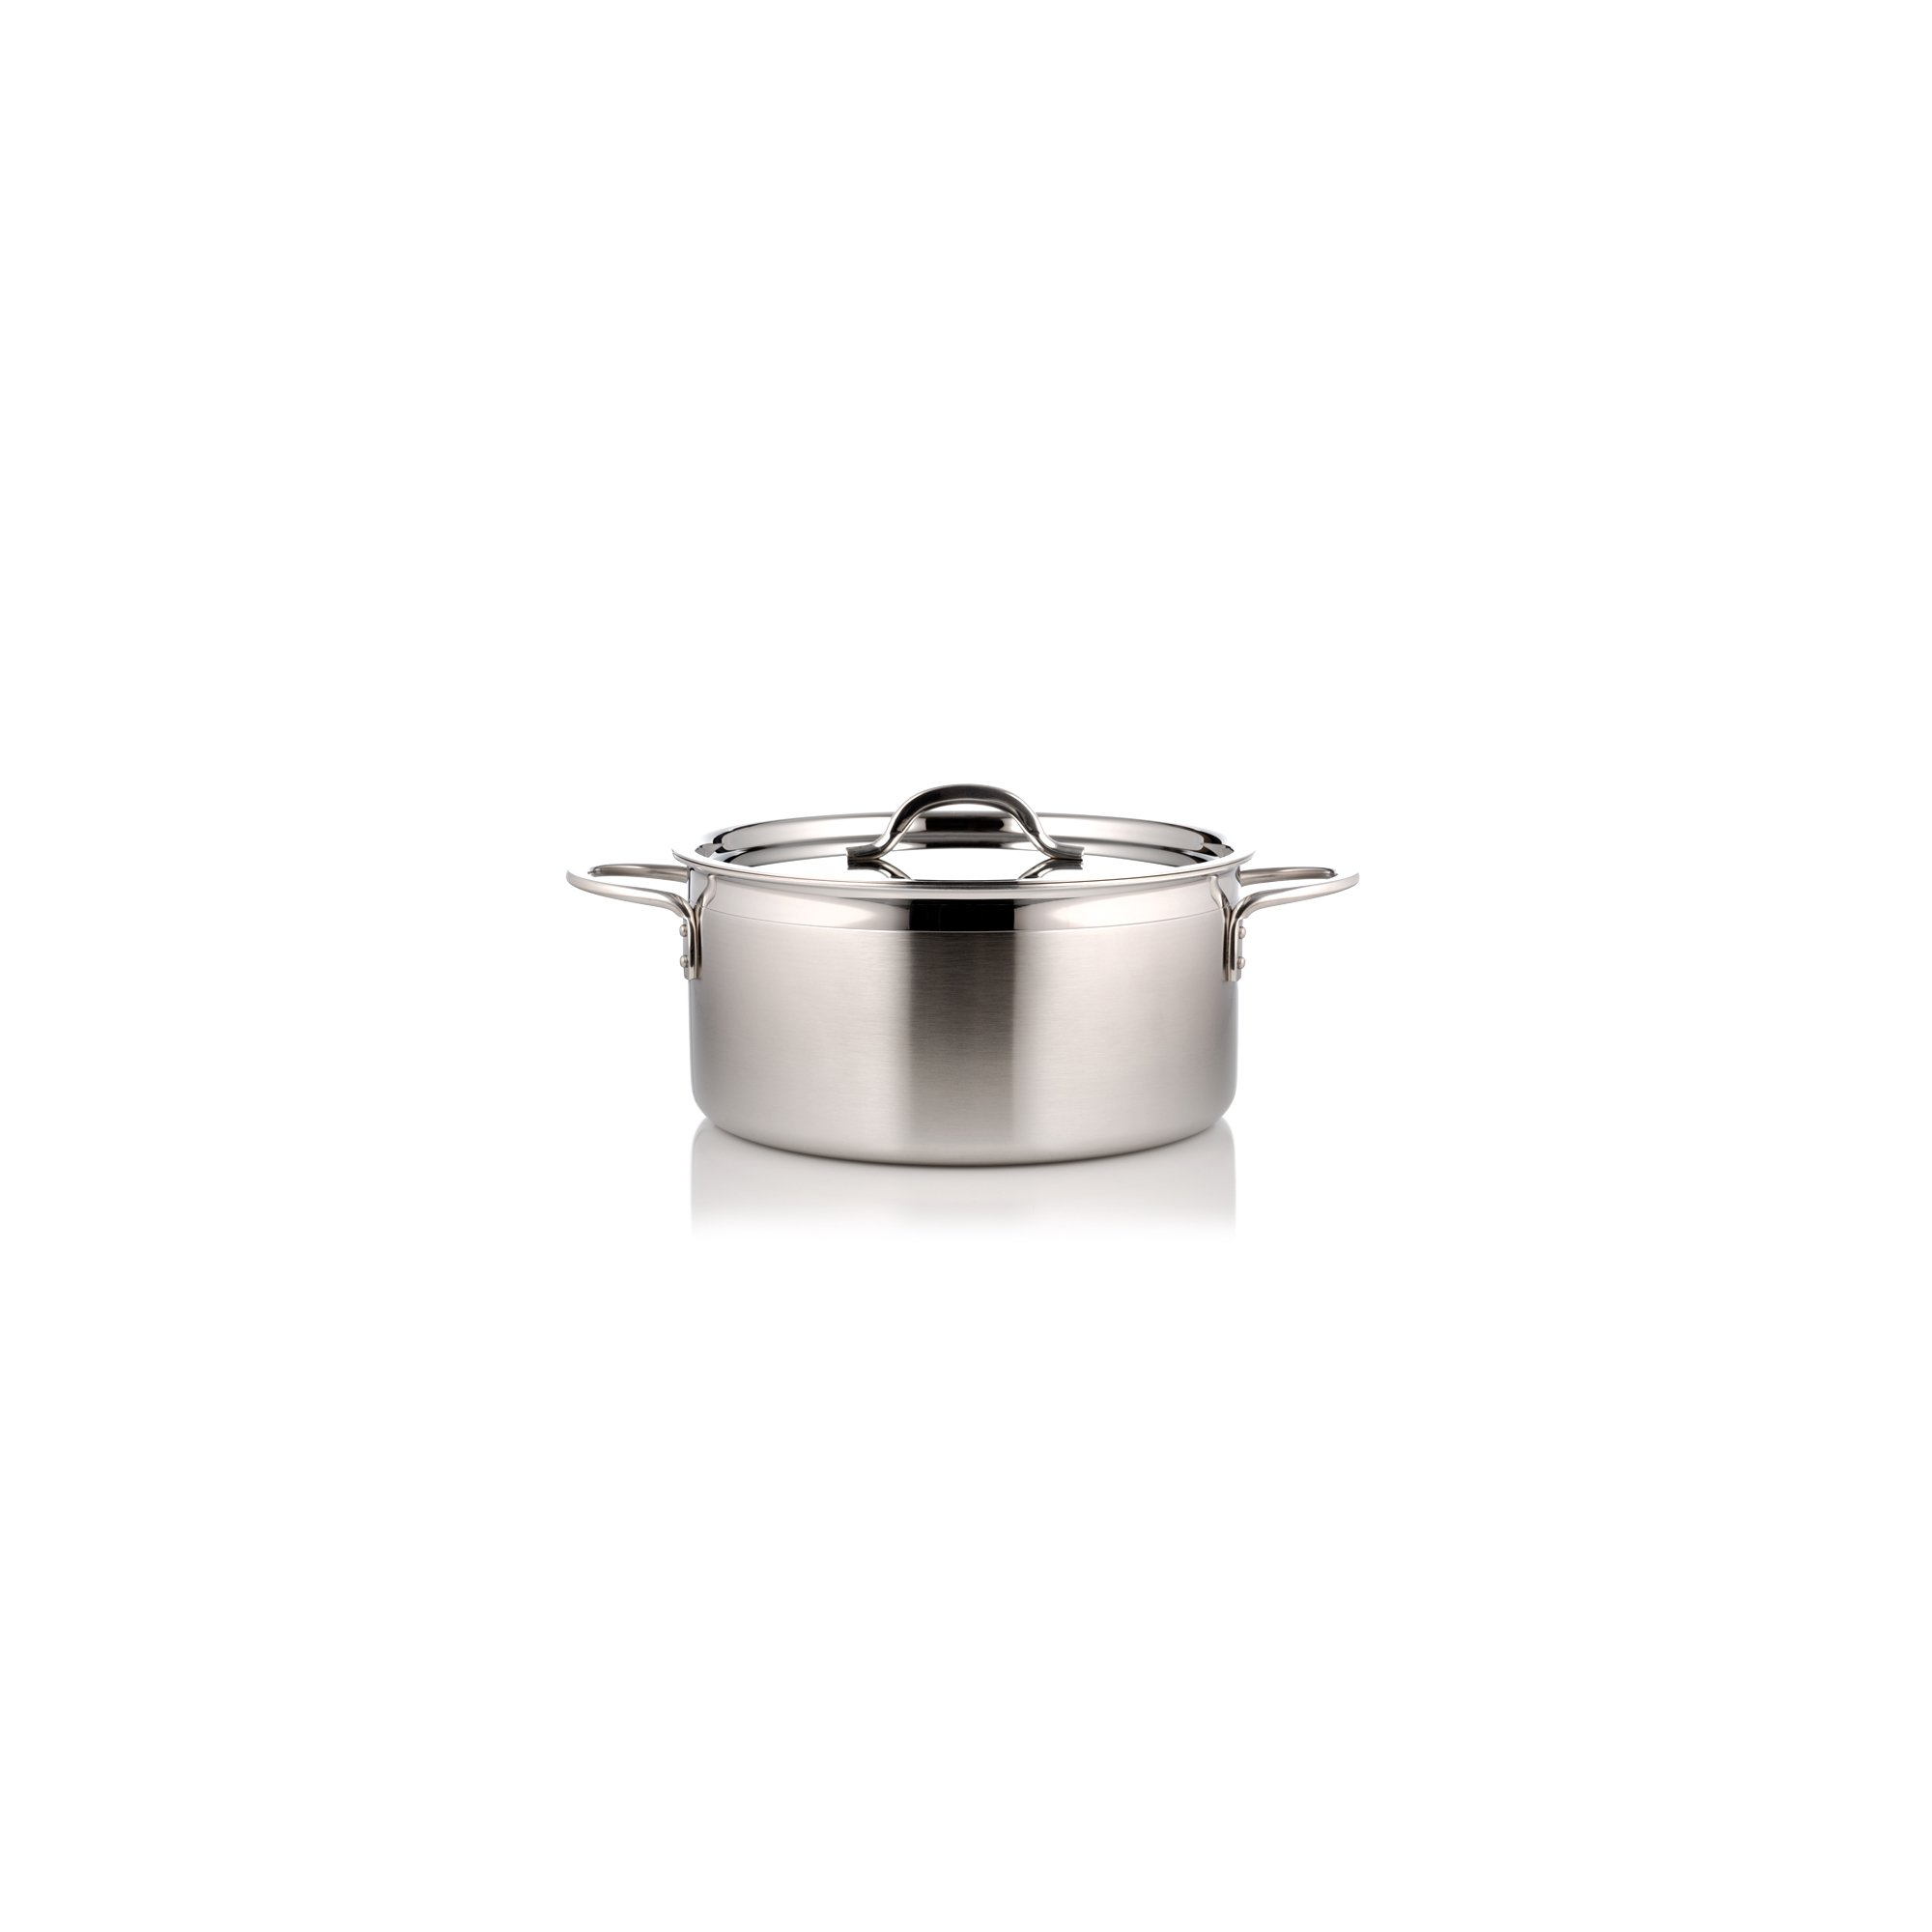 Bon Chef 60299-2ToneSS Country French Two Tone, 1.7 quart Pot with Cover, Stainless Steel